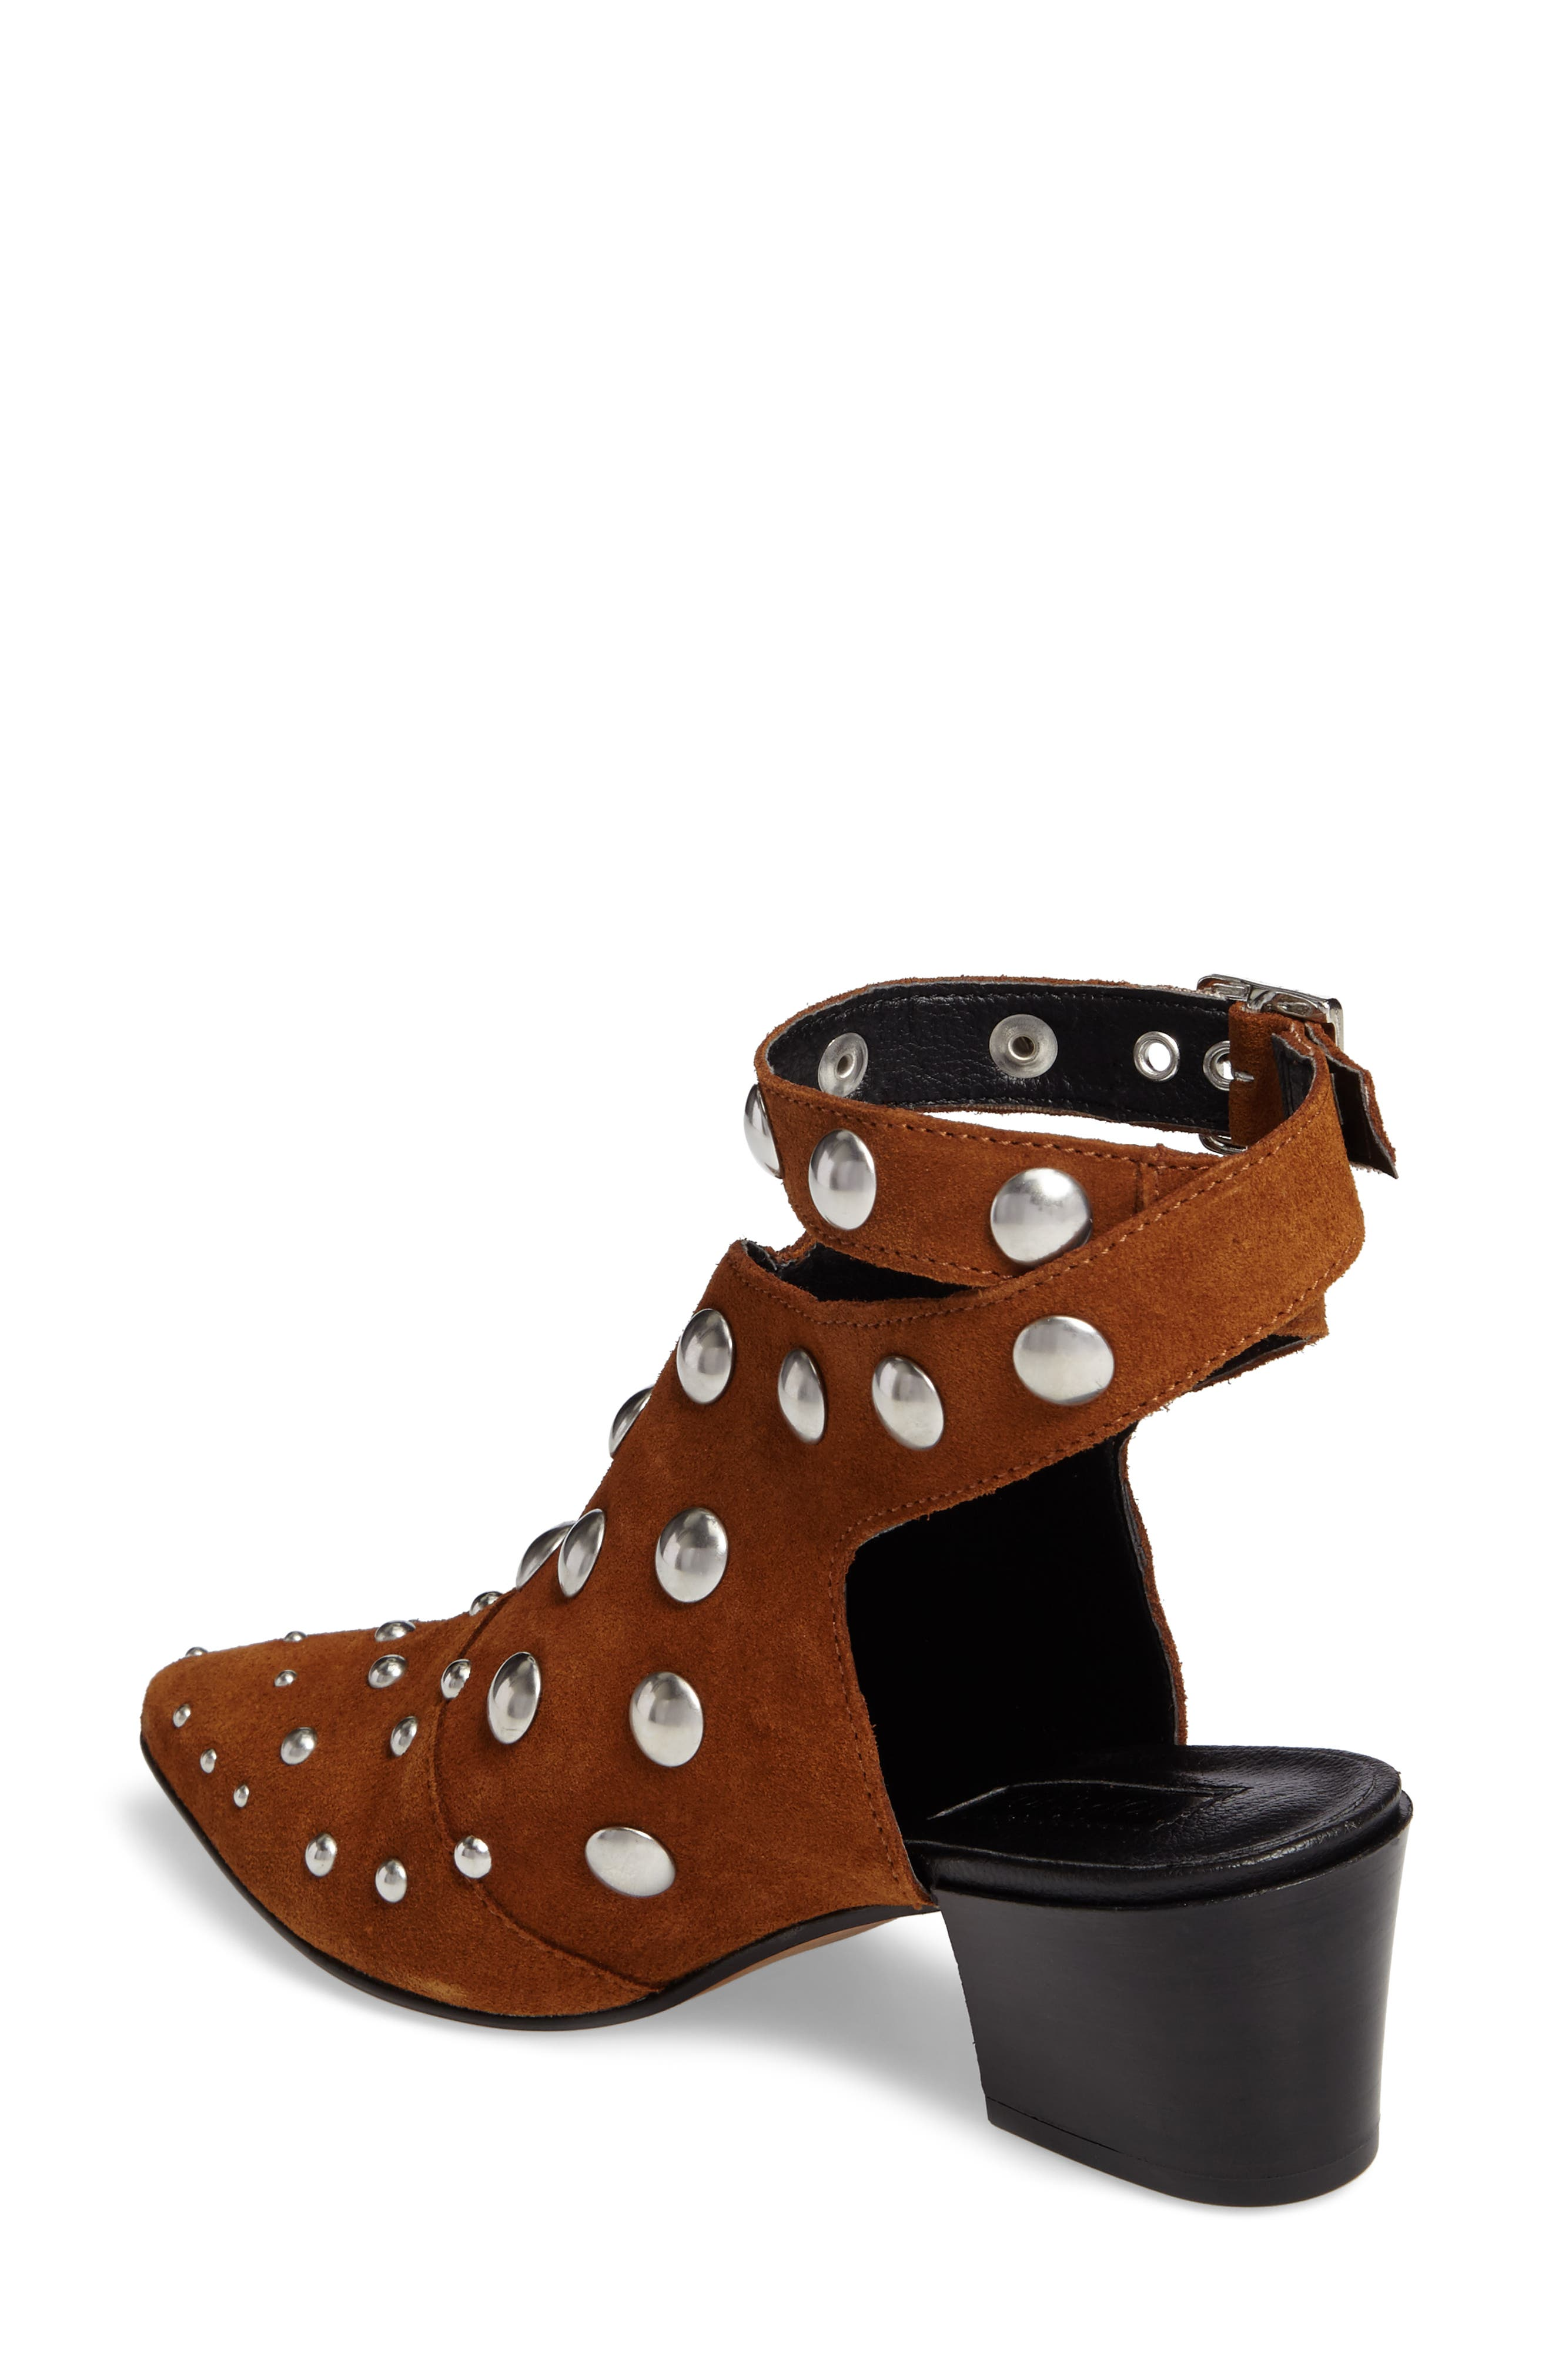 Madness Studded Wraparound Bootie,                             Alternate thumbnail 4, color,